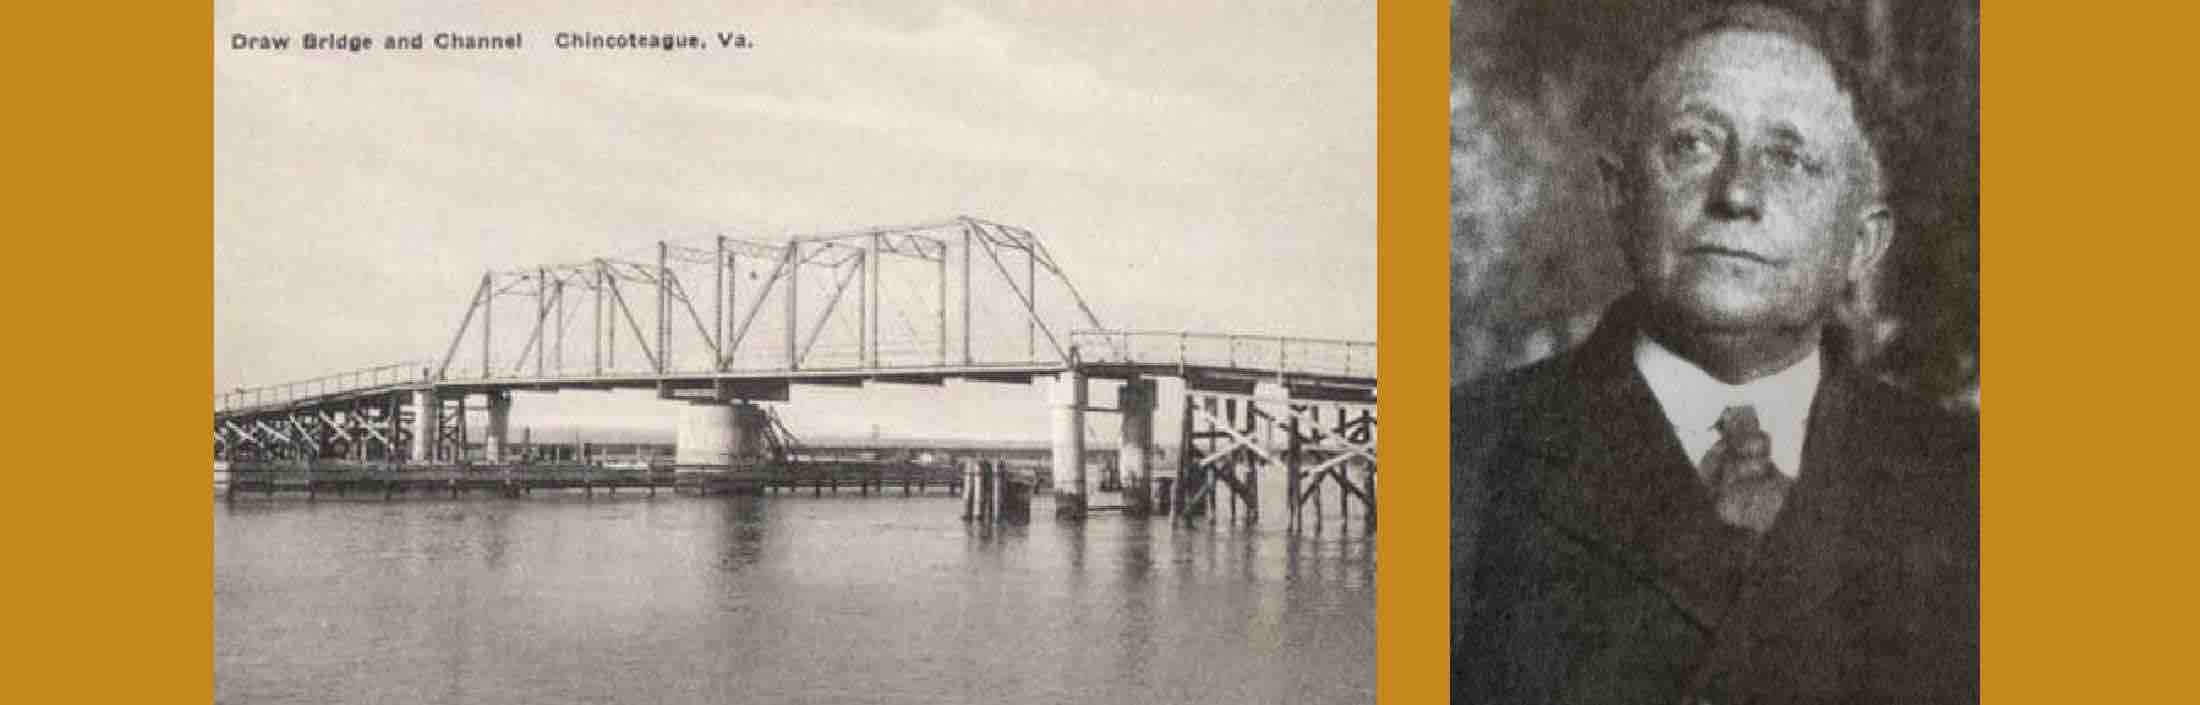 Six Bridges Over Troubled Water: A Dreadful Day in Chincoteague, 1922